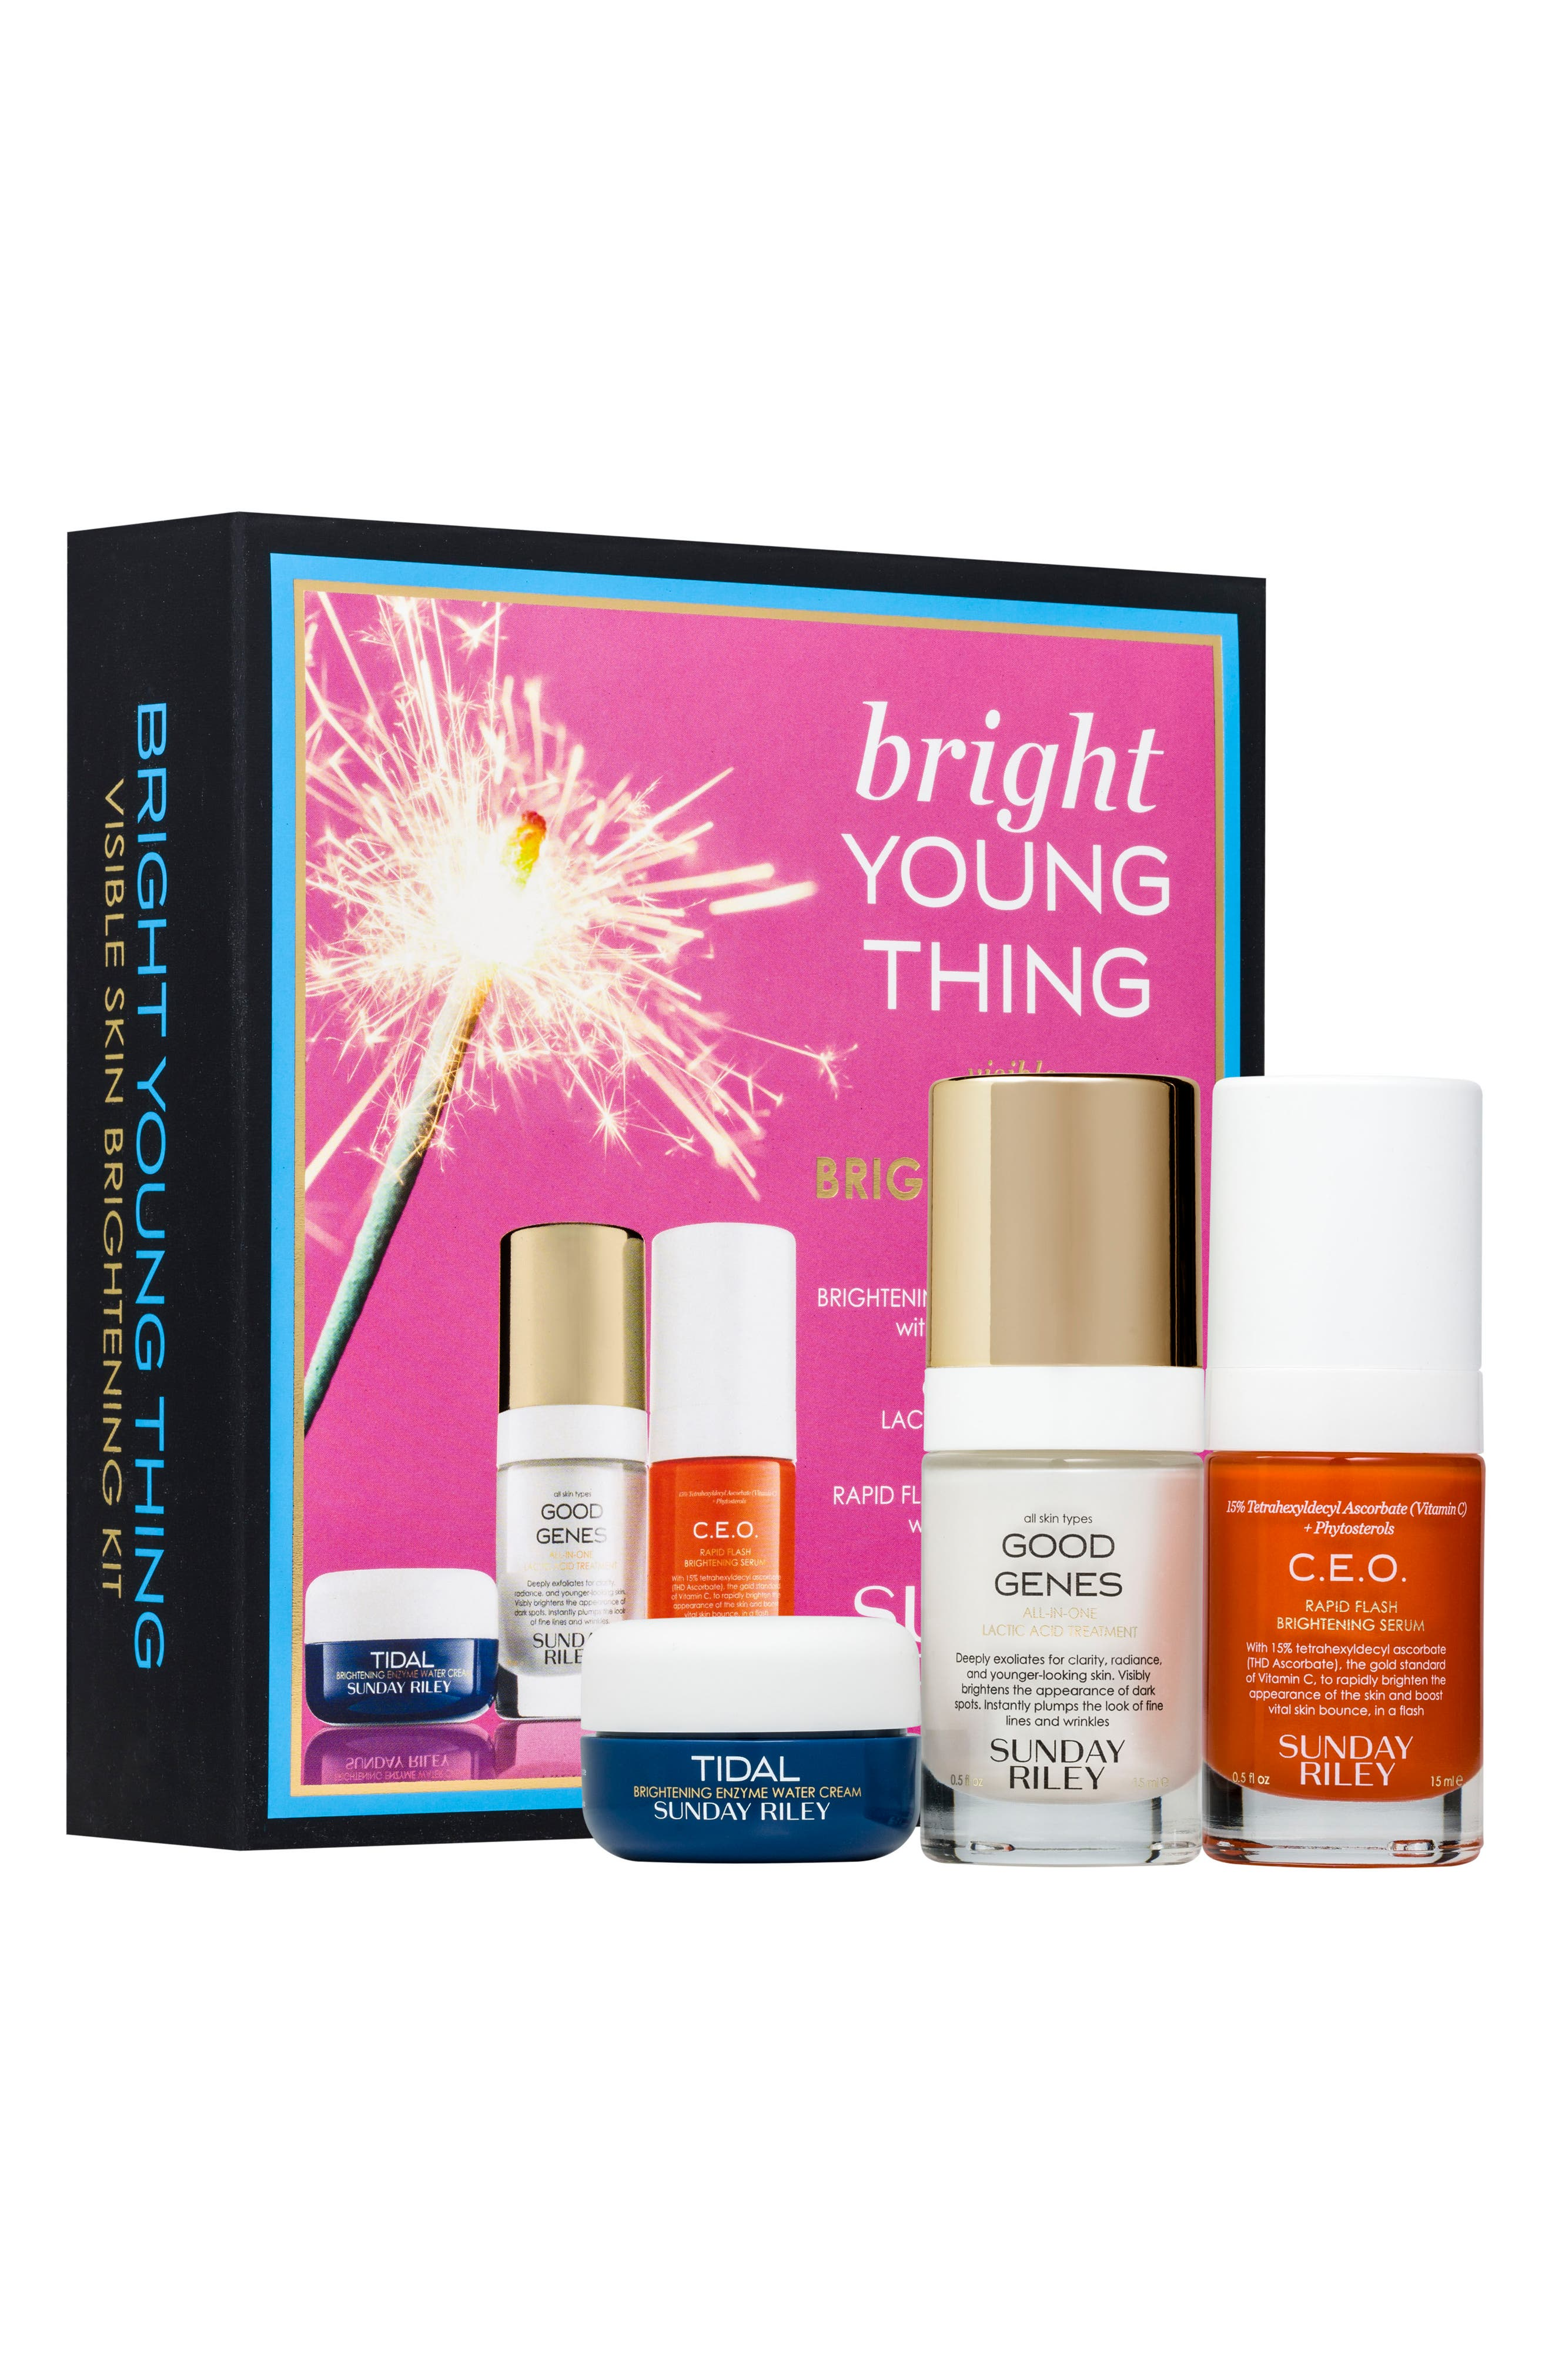 Bright Young Thing Set by Sunday Riley